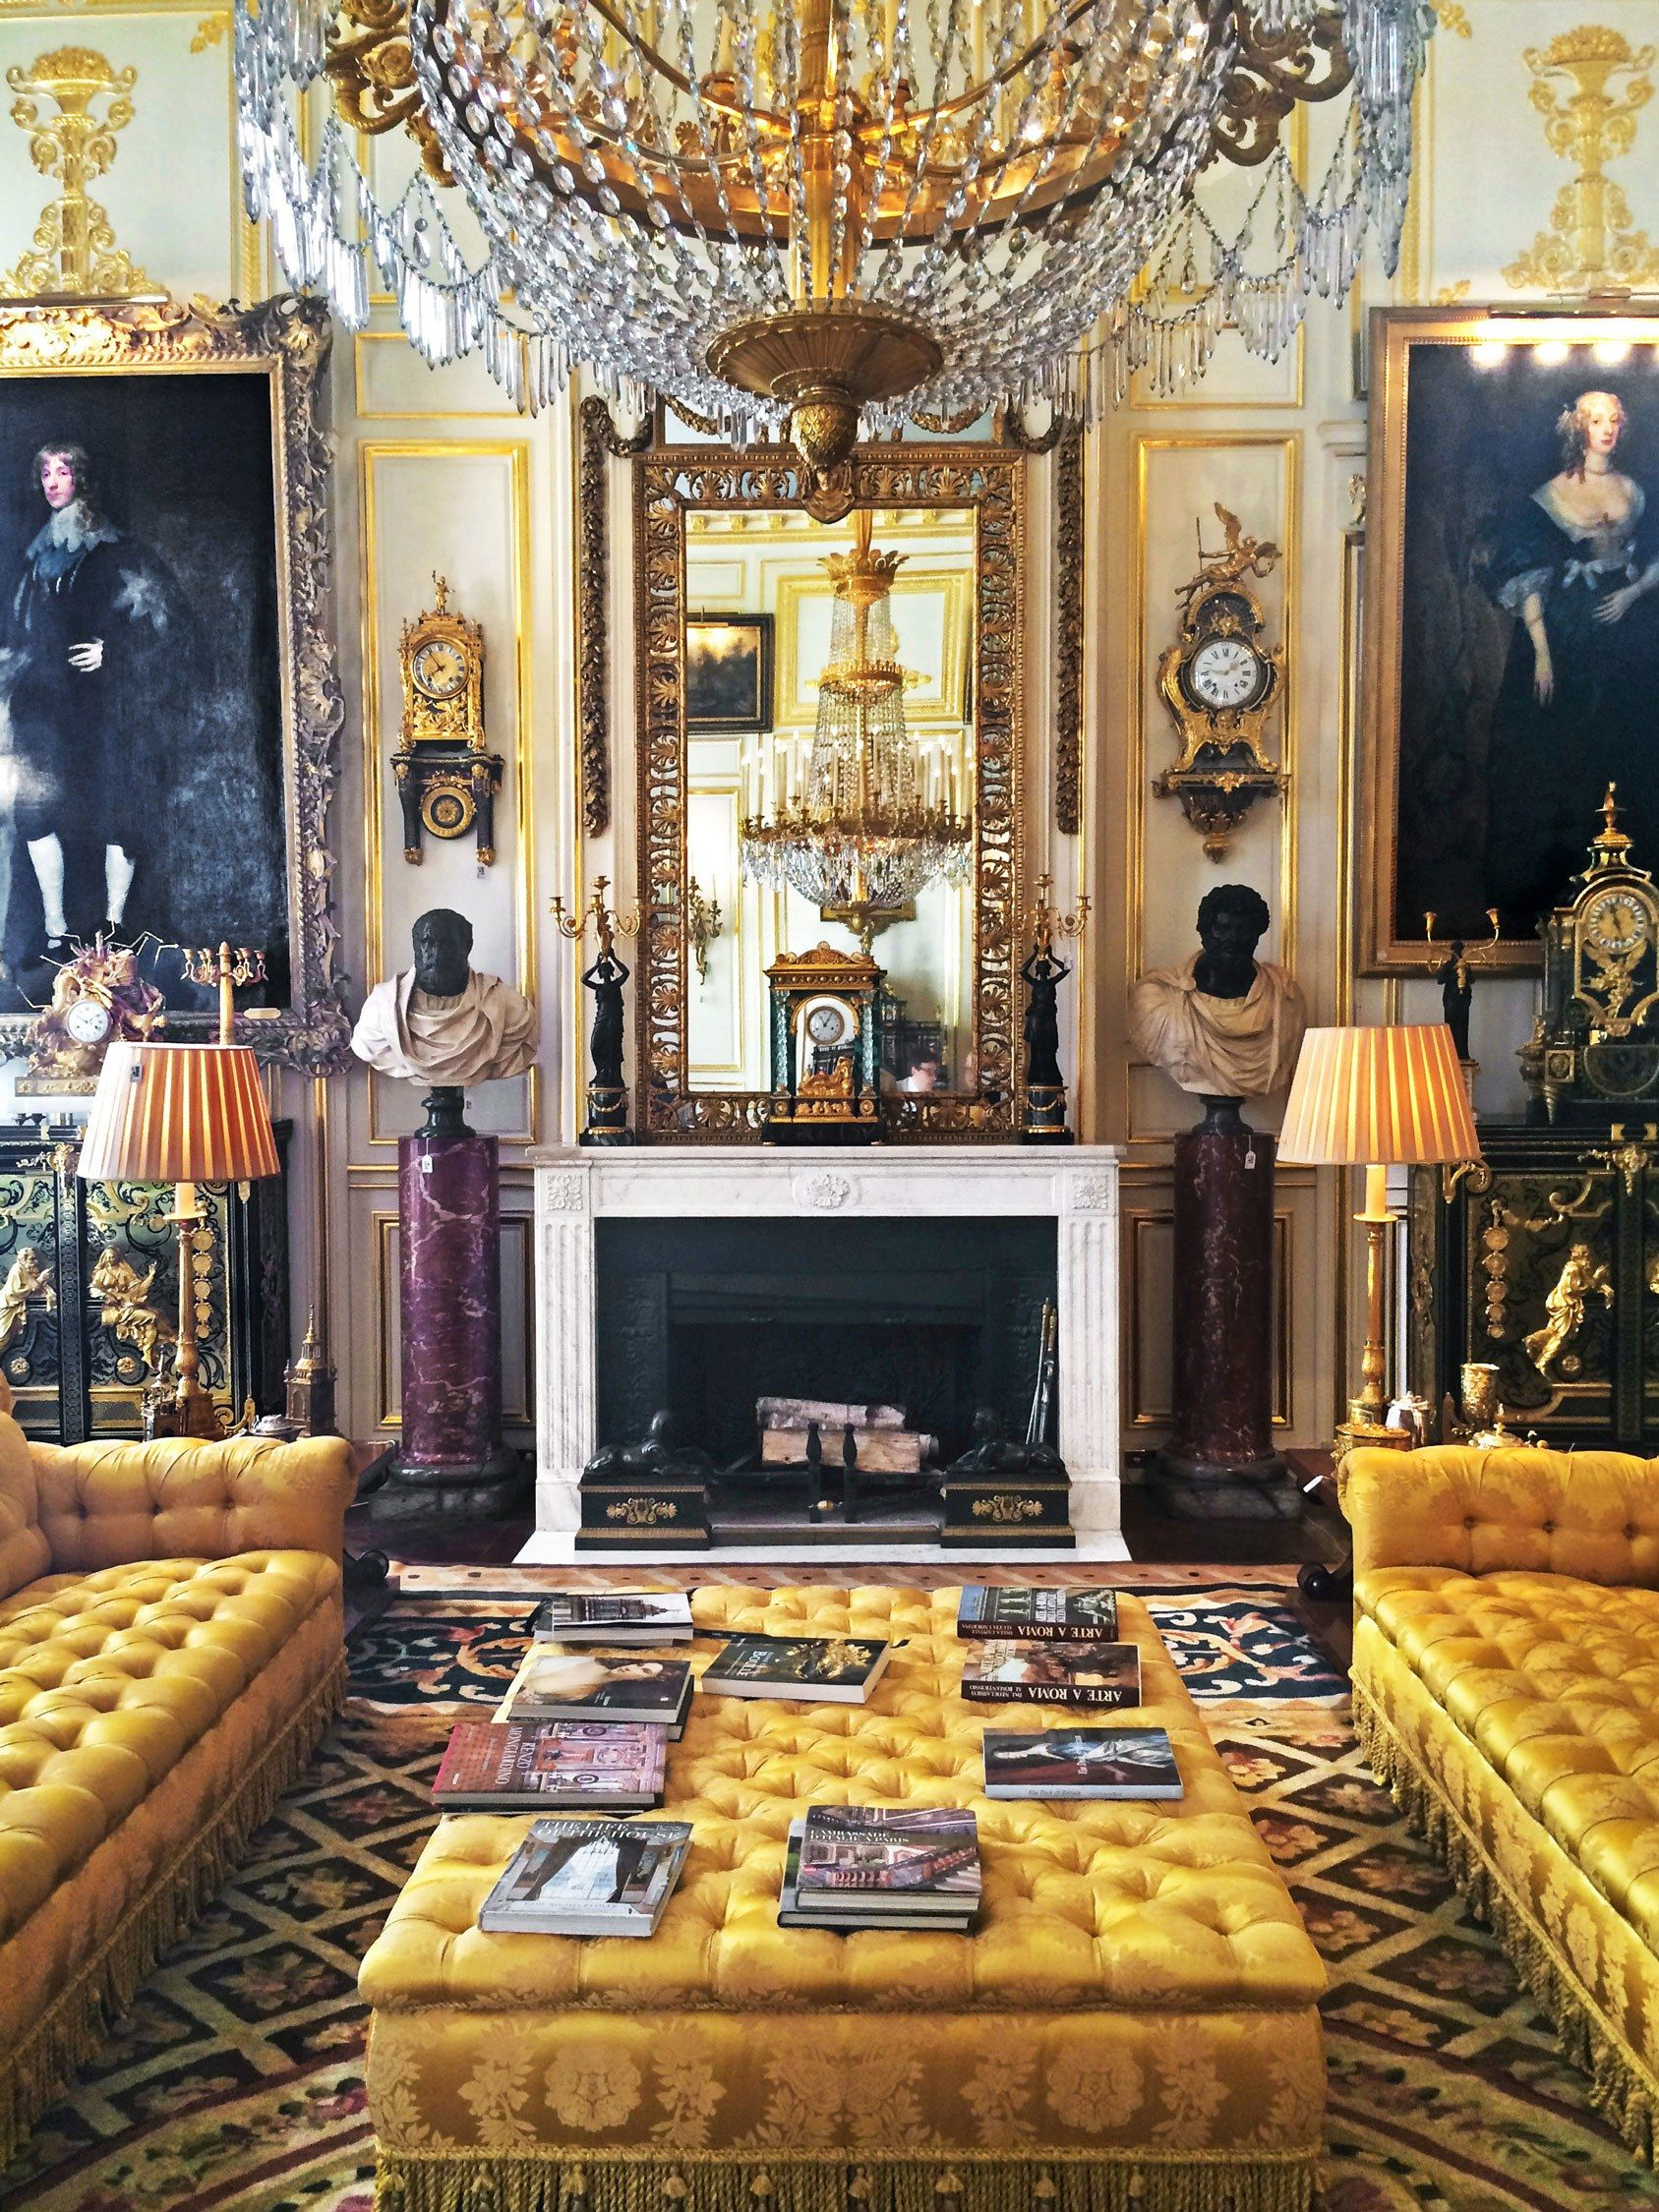 Sotheby's Will Auction Off Robert Zellinger de Balkany's Paris ... on paris house interior, paris garden, paris clothing, paris house bedroom, paris paintings, paris fashion, paris jokes, paris food, paris cosmetics, paris life, paris love, paris beauty, paris coffee, paris school, paris interior design, paris sports, paris holiday, paris movies, paris house style, paris valentine's,